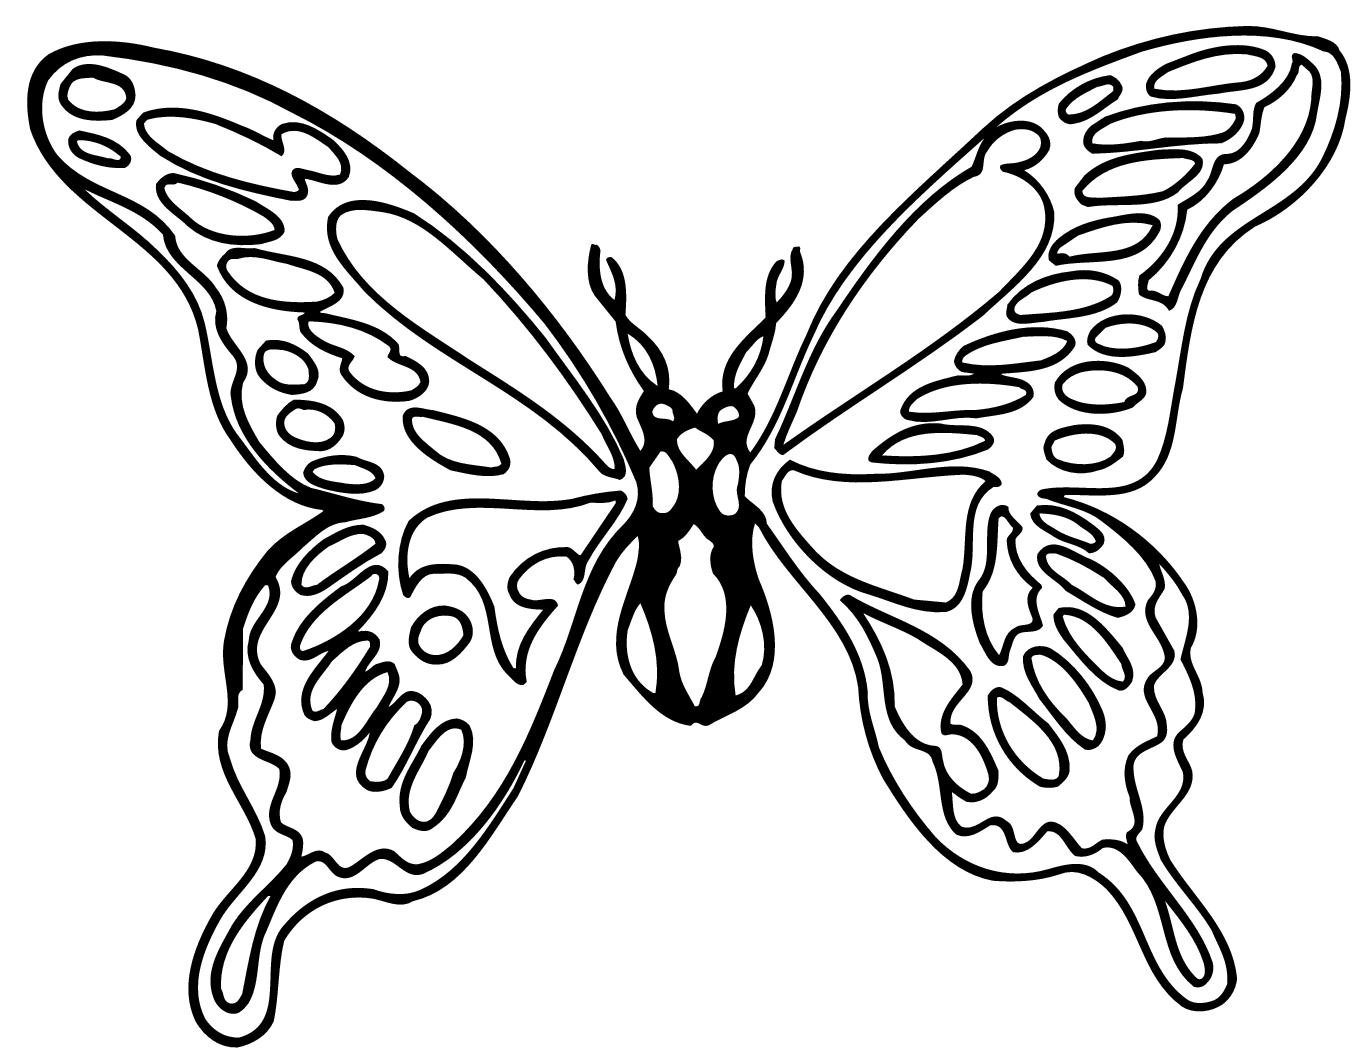 1367x1054 Flower Butterfly Black And White Drawing How To Draw A Butterfly